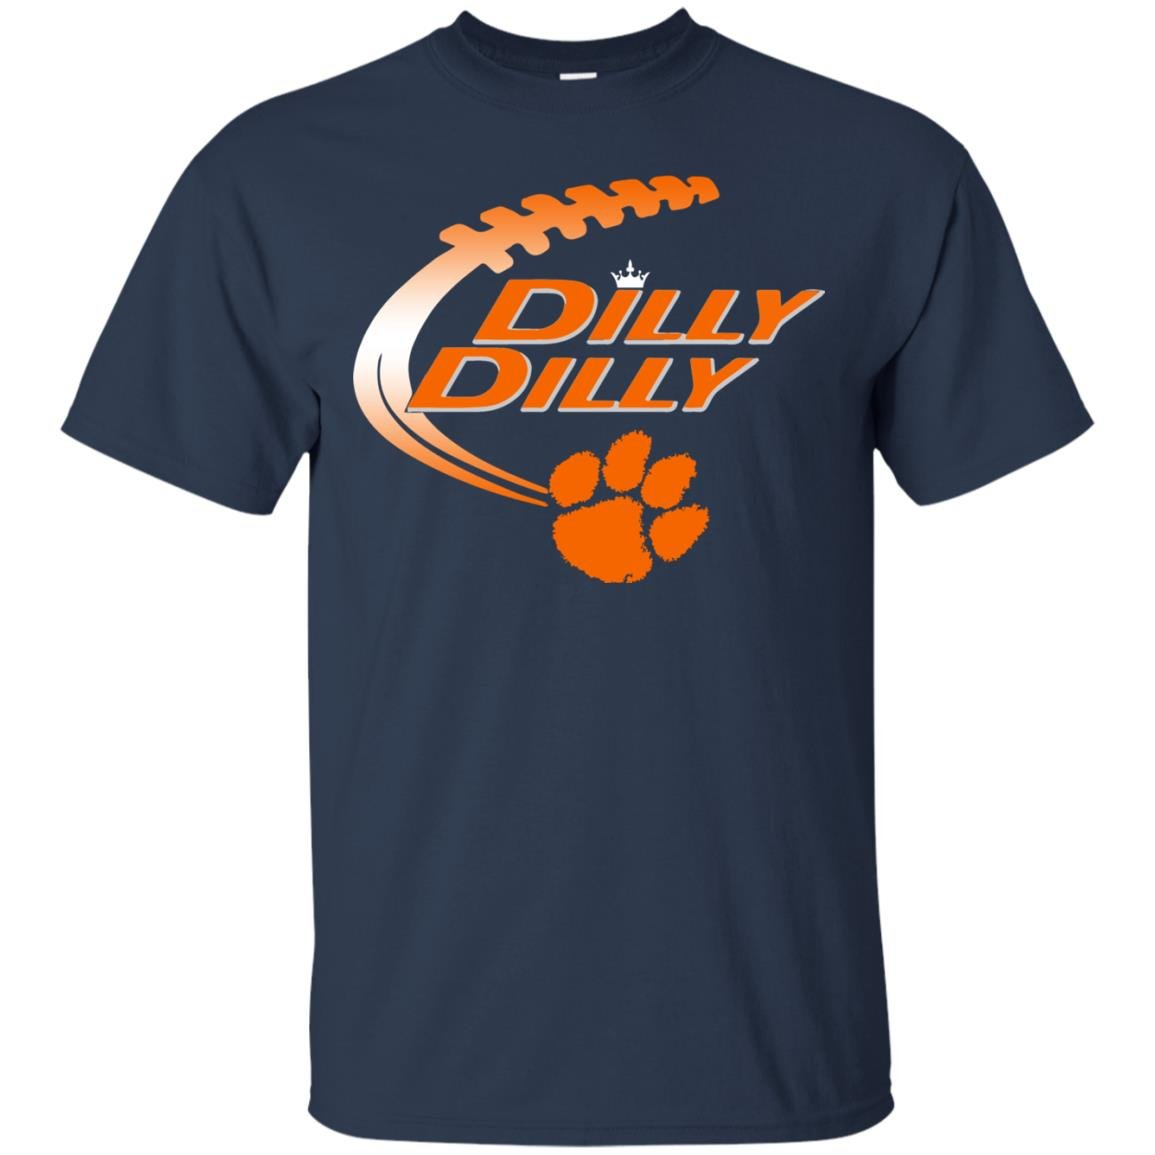 image 1455 - Dilly Dilly Clemson Tigers shirt & sweatshirt